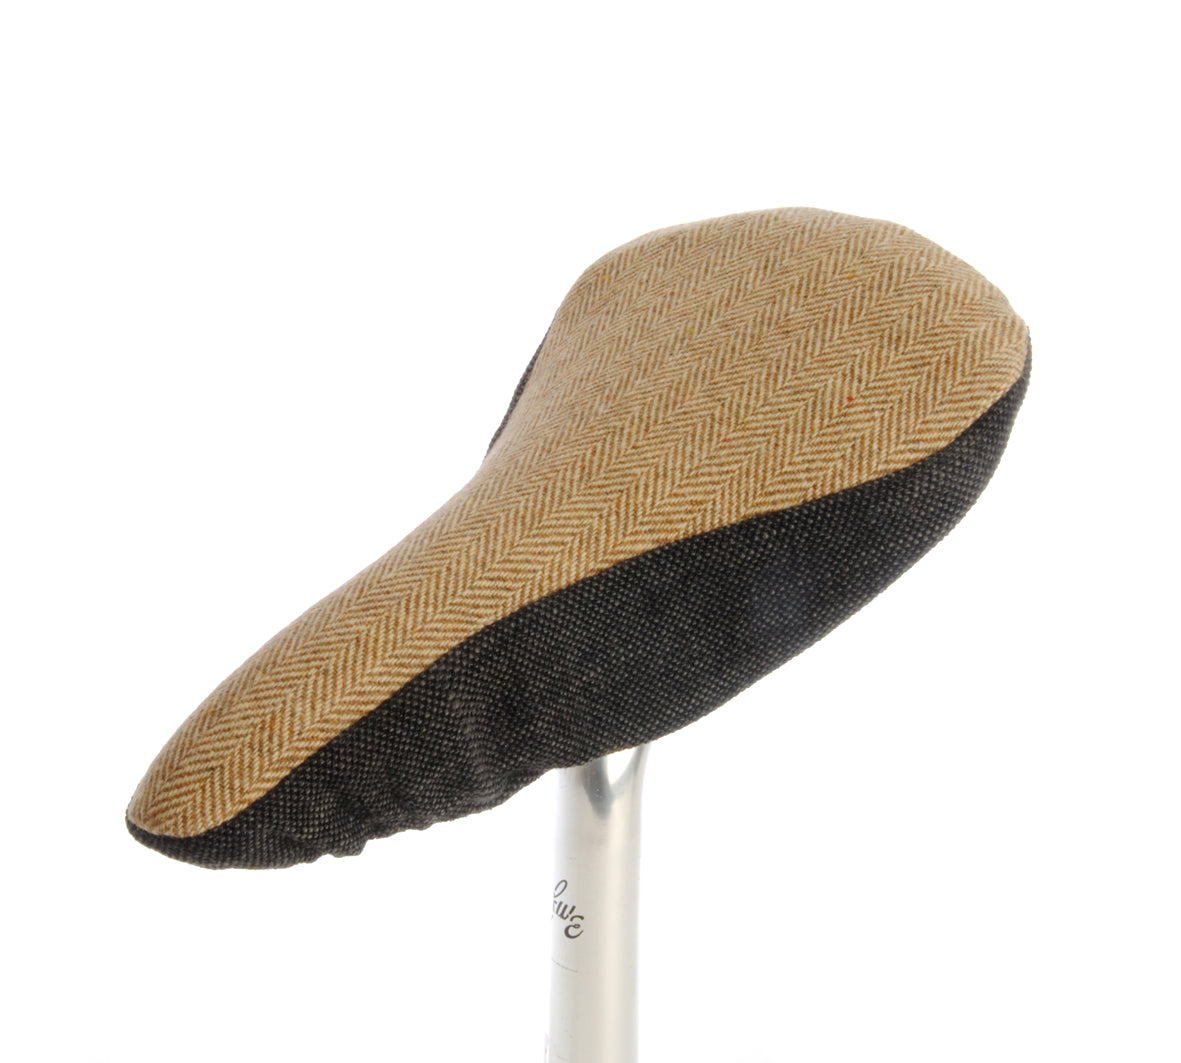 Sutherland Saddle Cover - Beige